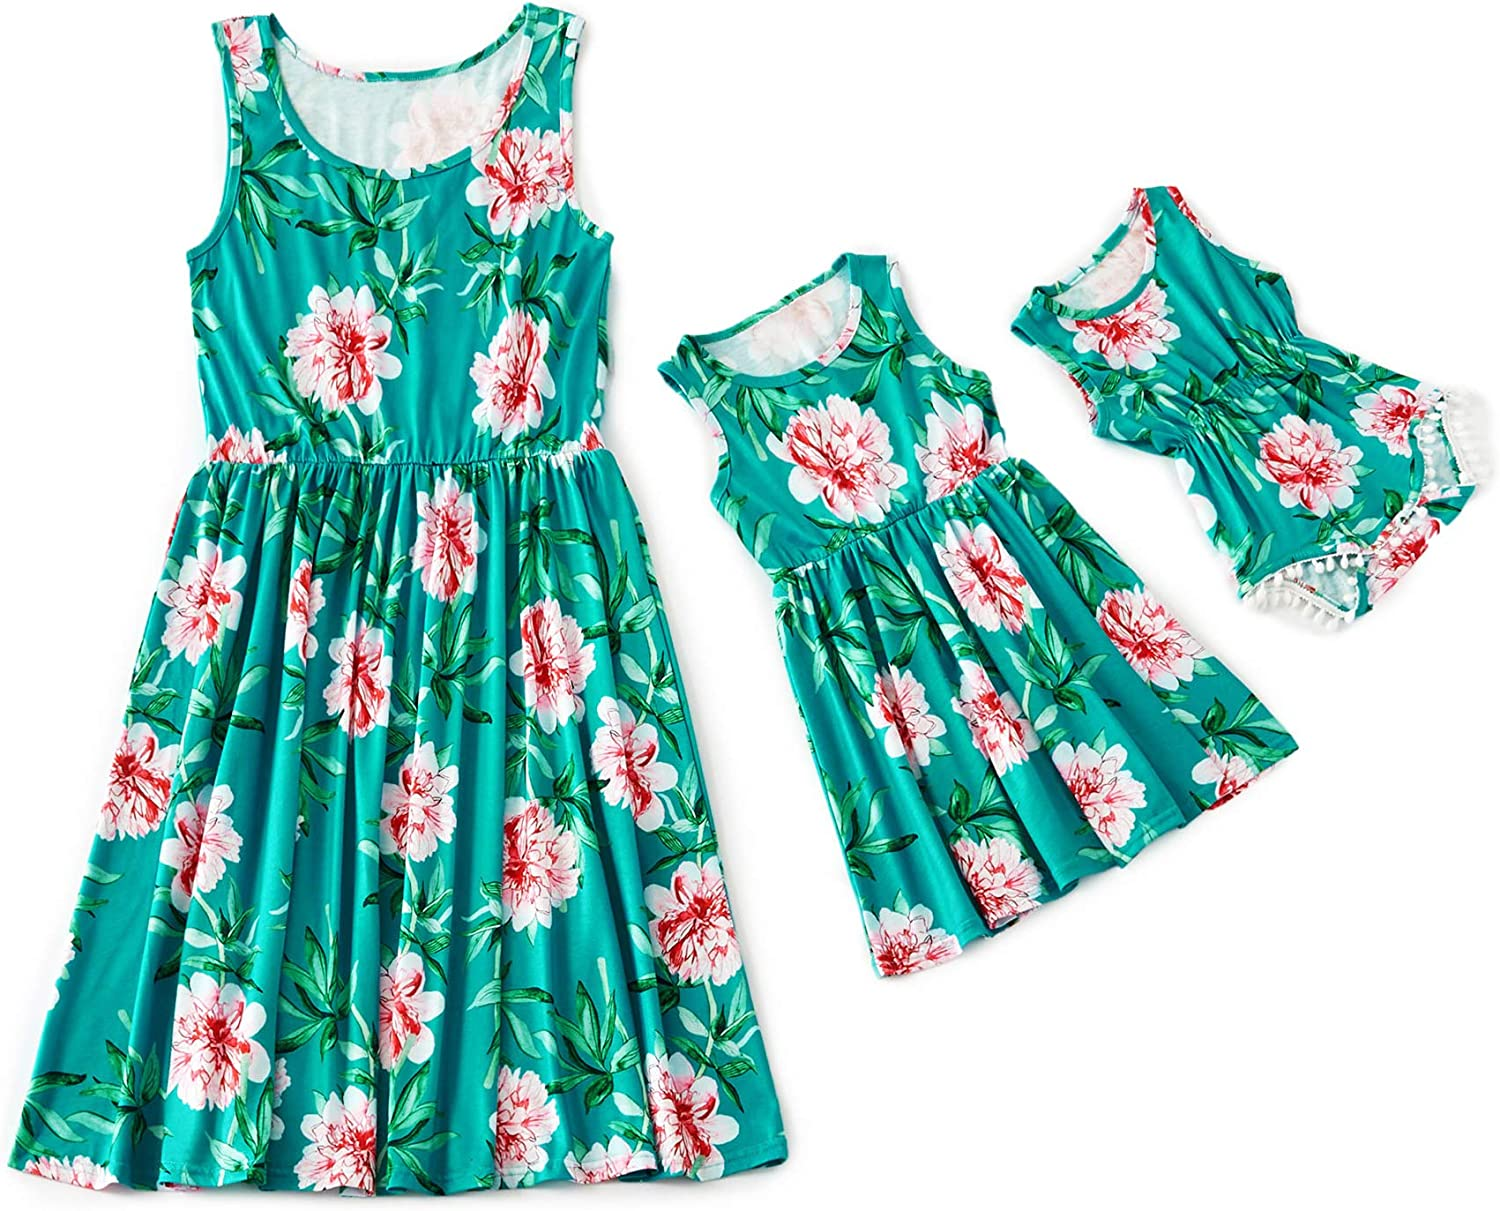 IFFEI Mommy and Me Matching Knee Dress Sleeveless Floral Printed Casual Tank Pleated Dress for Mother and Daughter